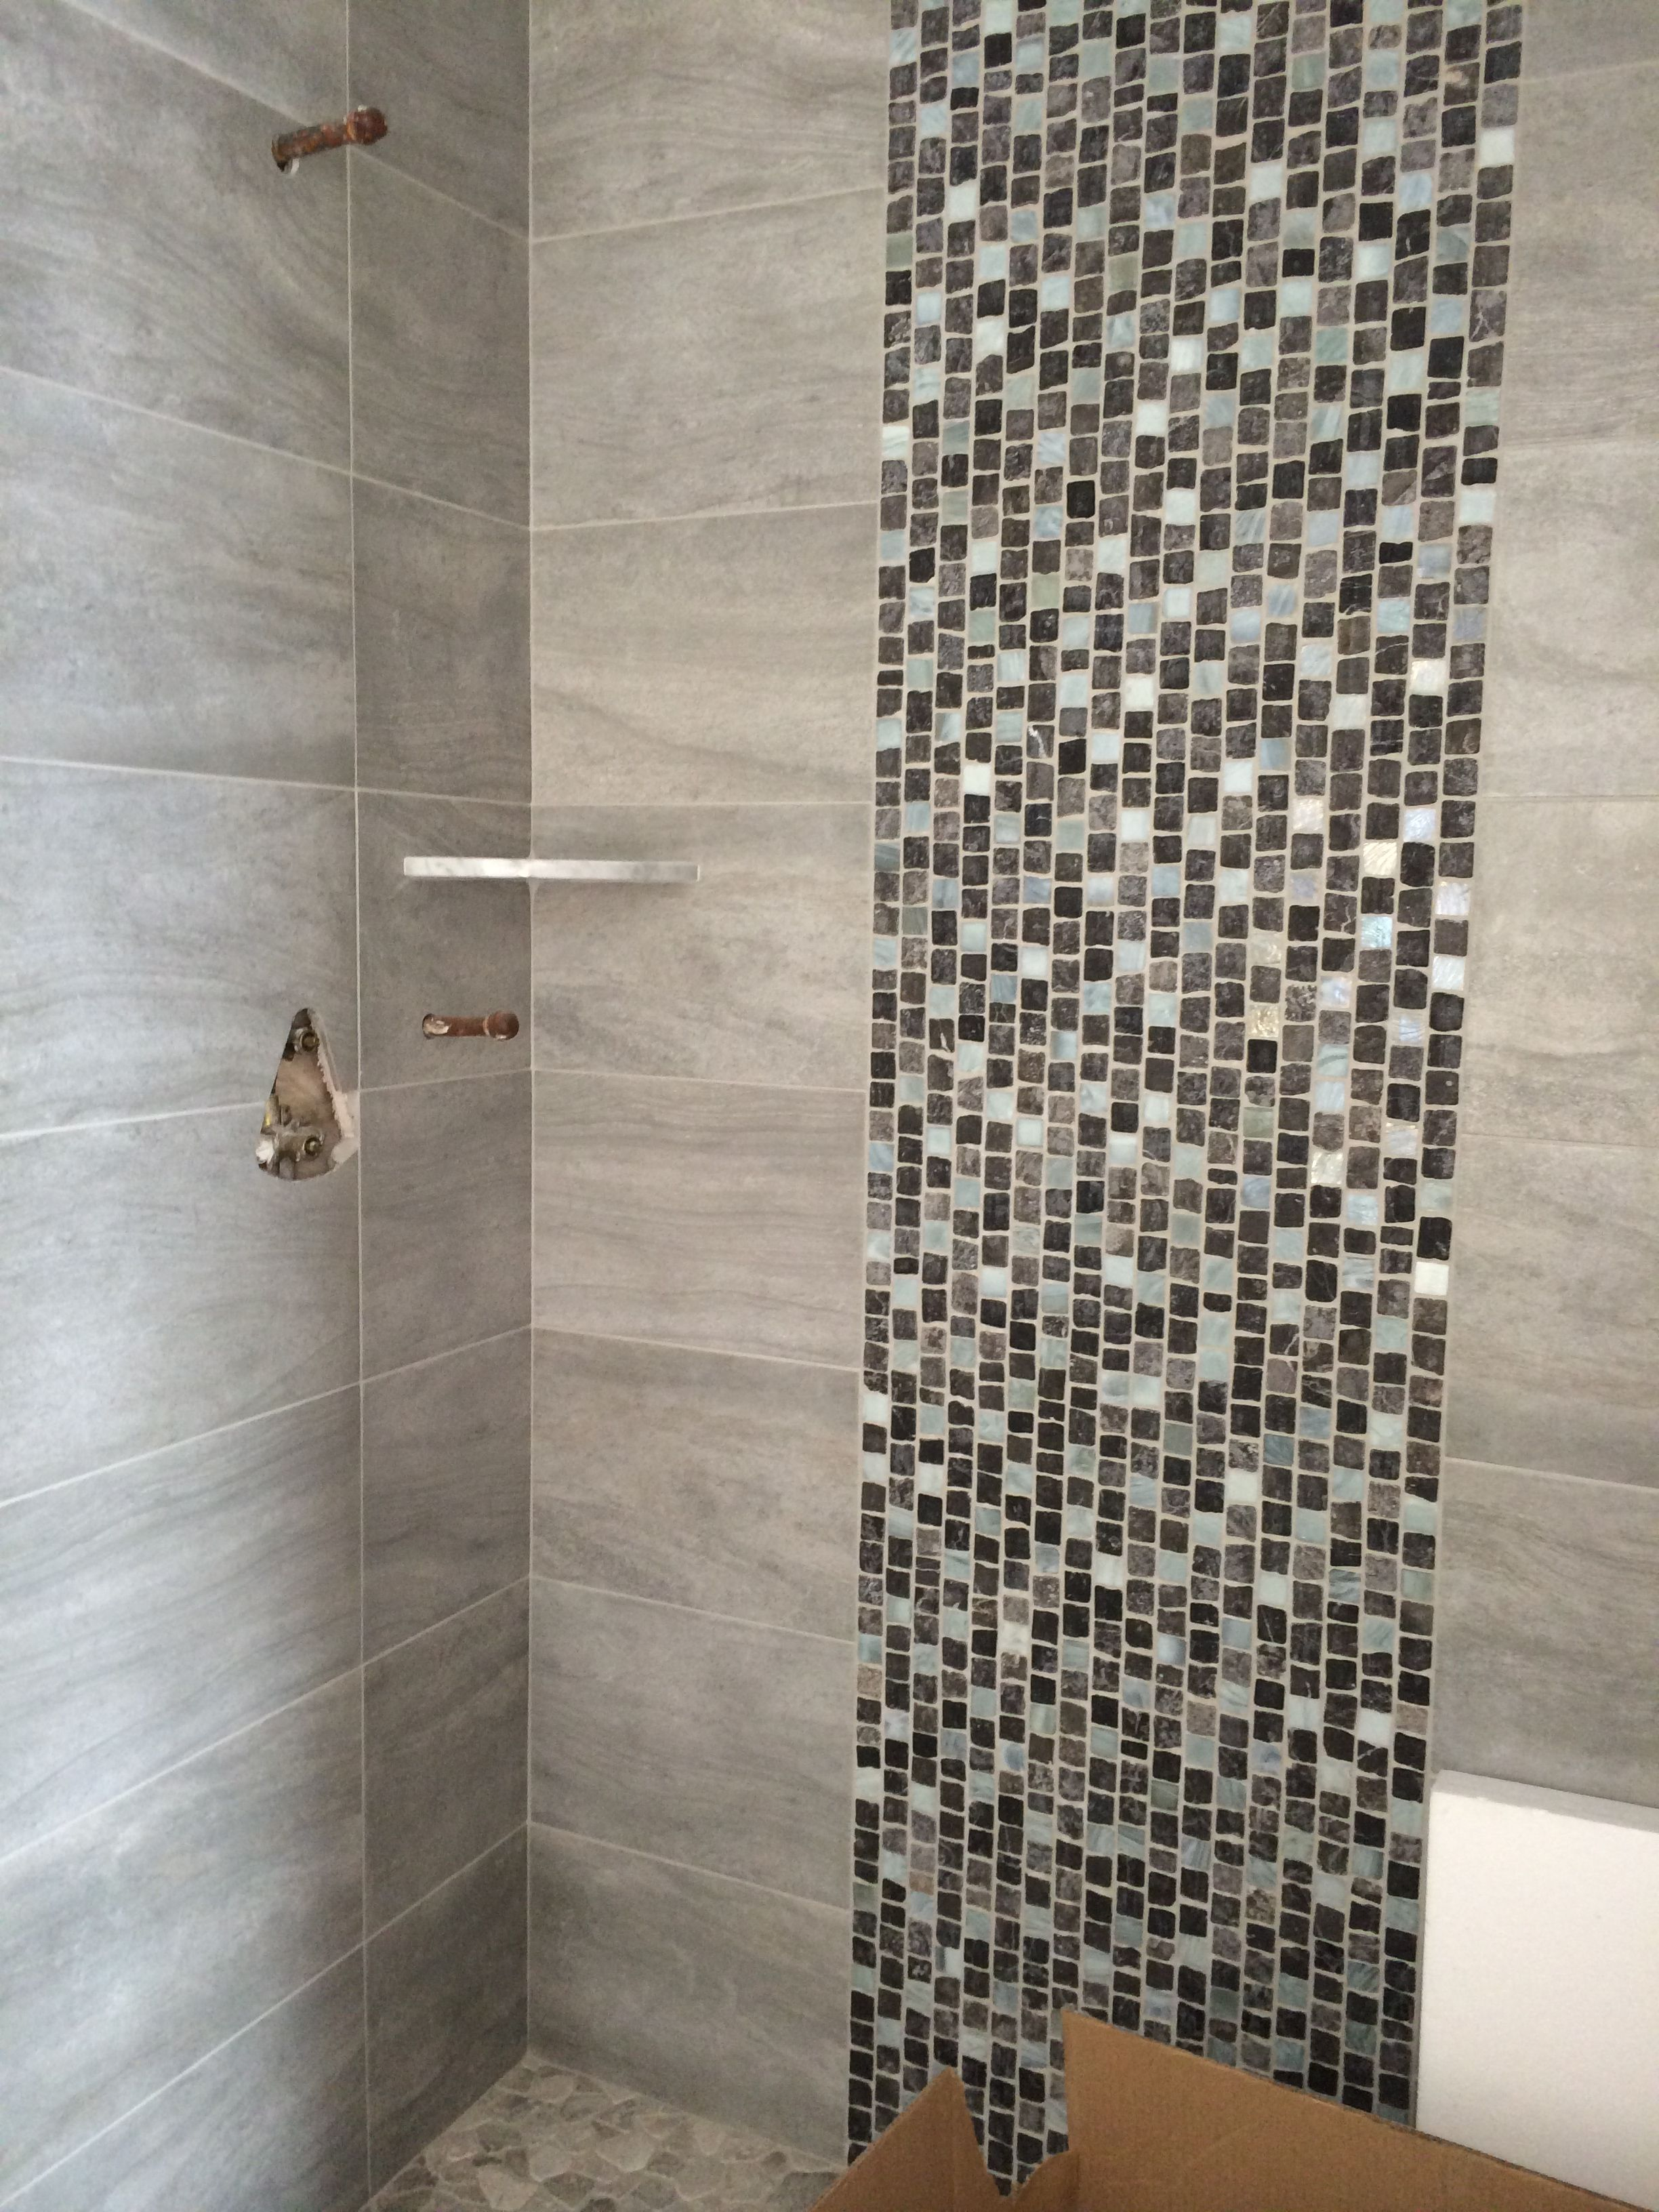 12 x 24 porcelain shower walls w stone and glass tile lisello 12 x 24 porcelain shower walls w stone and glass tile lisello staggered stone dailygadgetfo Choice Image